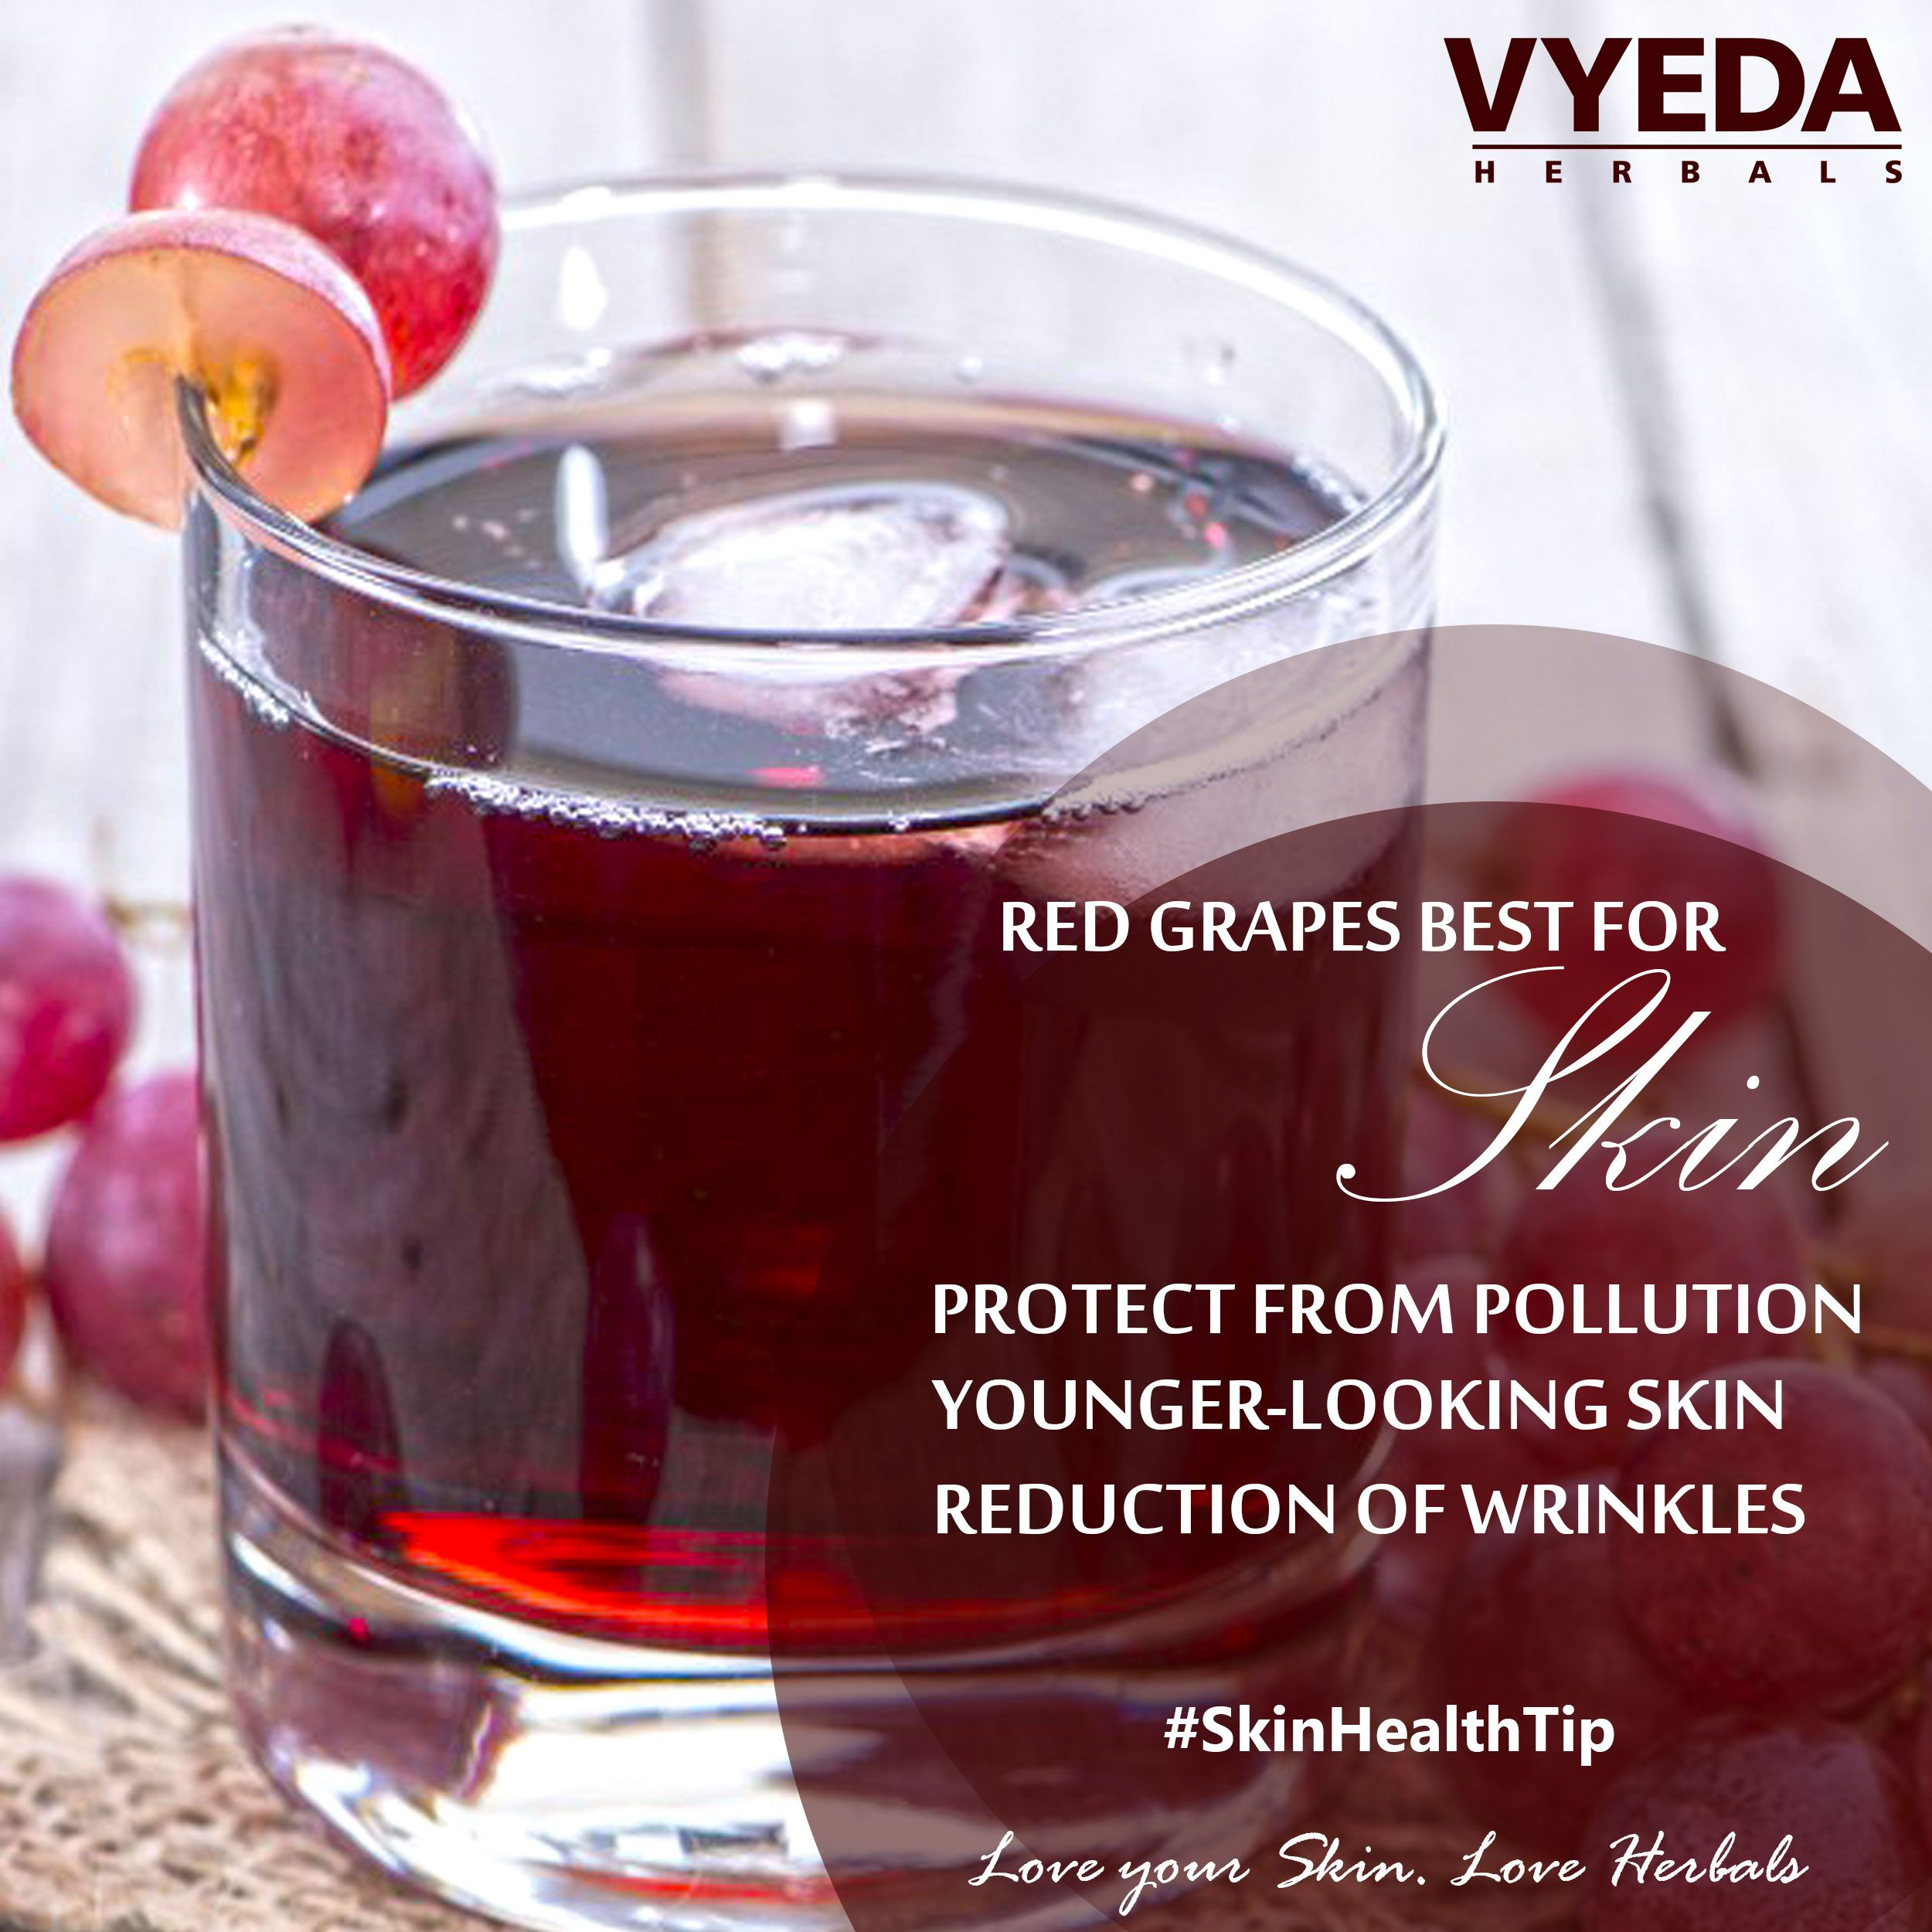 Ever Tried Red Grapes Juice For Good Health Skin Redgrapesjuice Skincare Skinhealthtip Redgrapes Vy Red Grapes Skin Health Love Your Skin